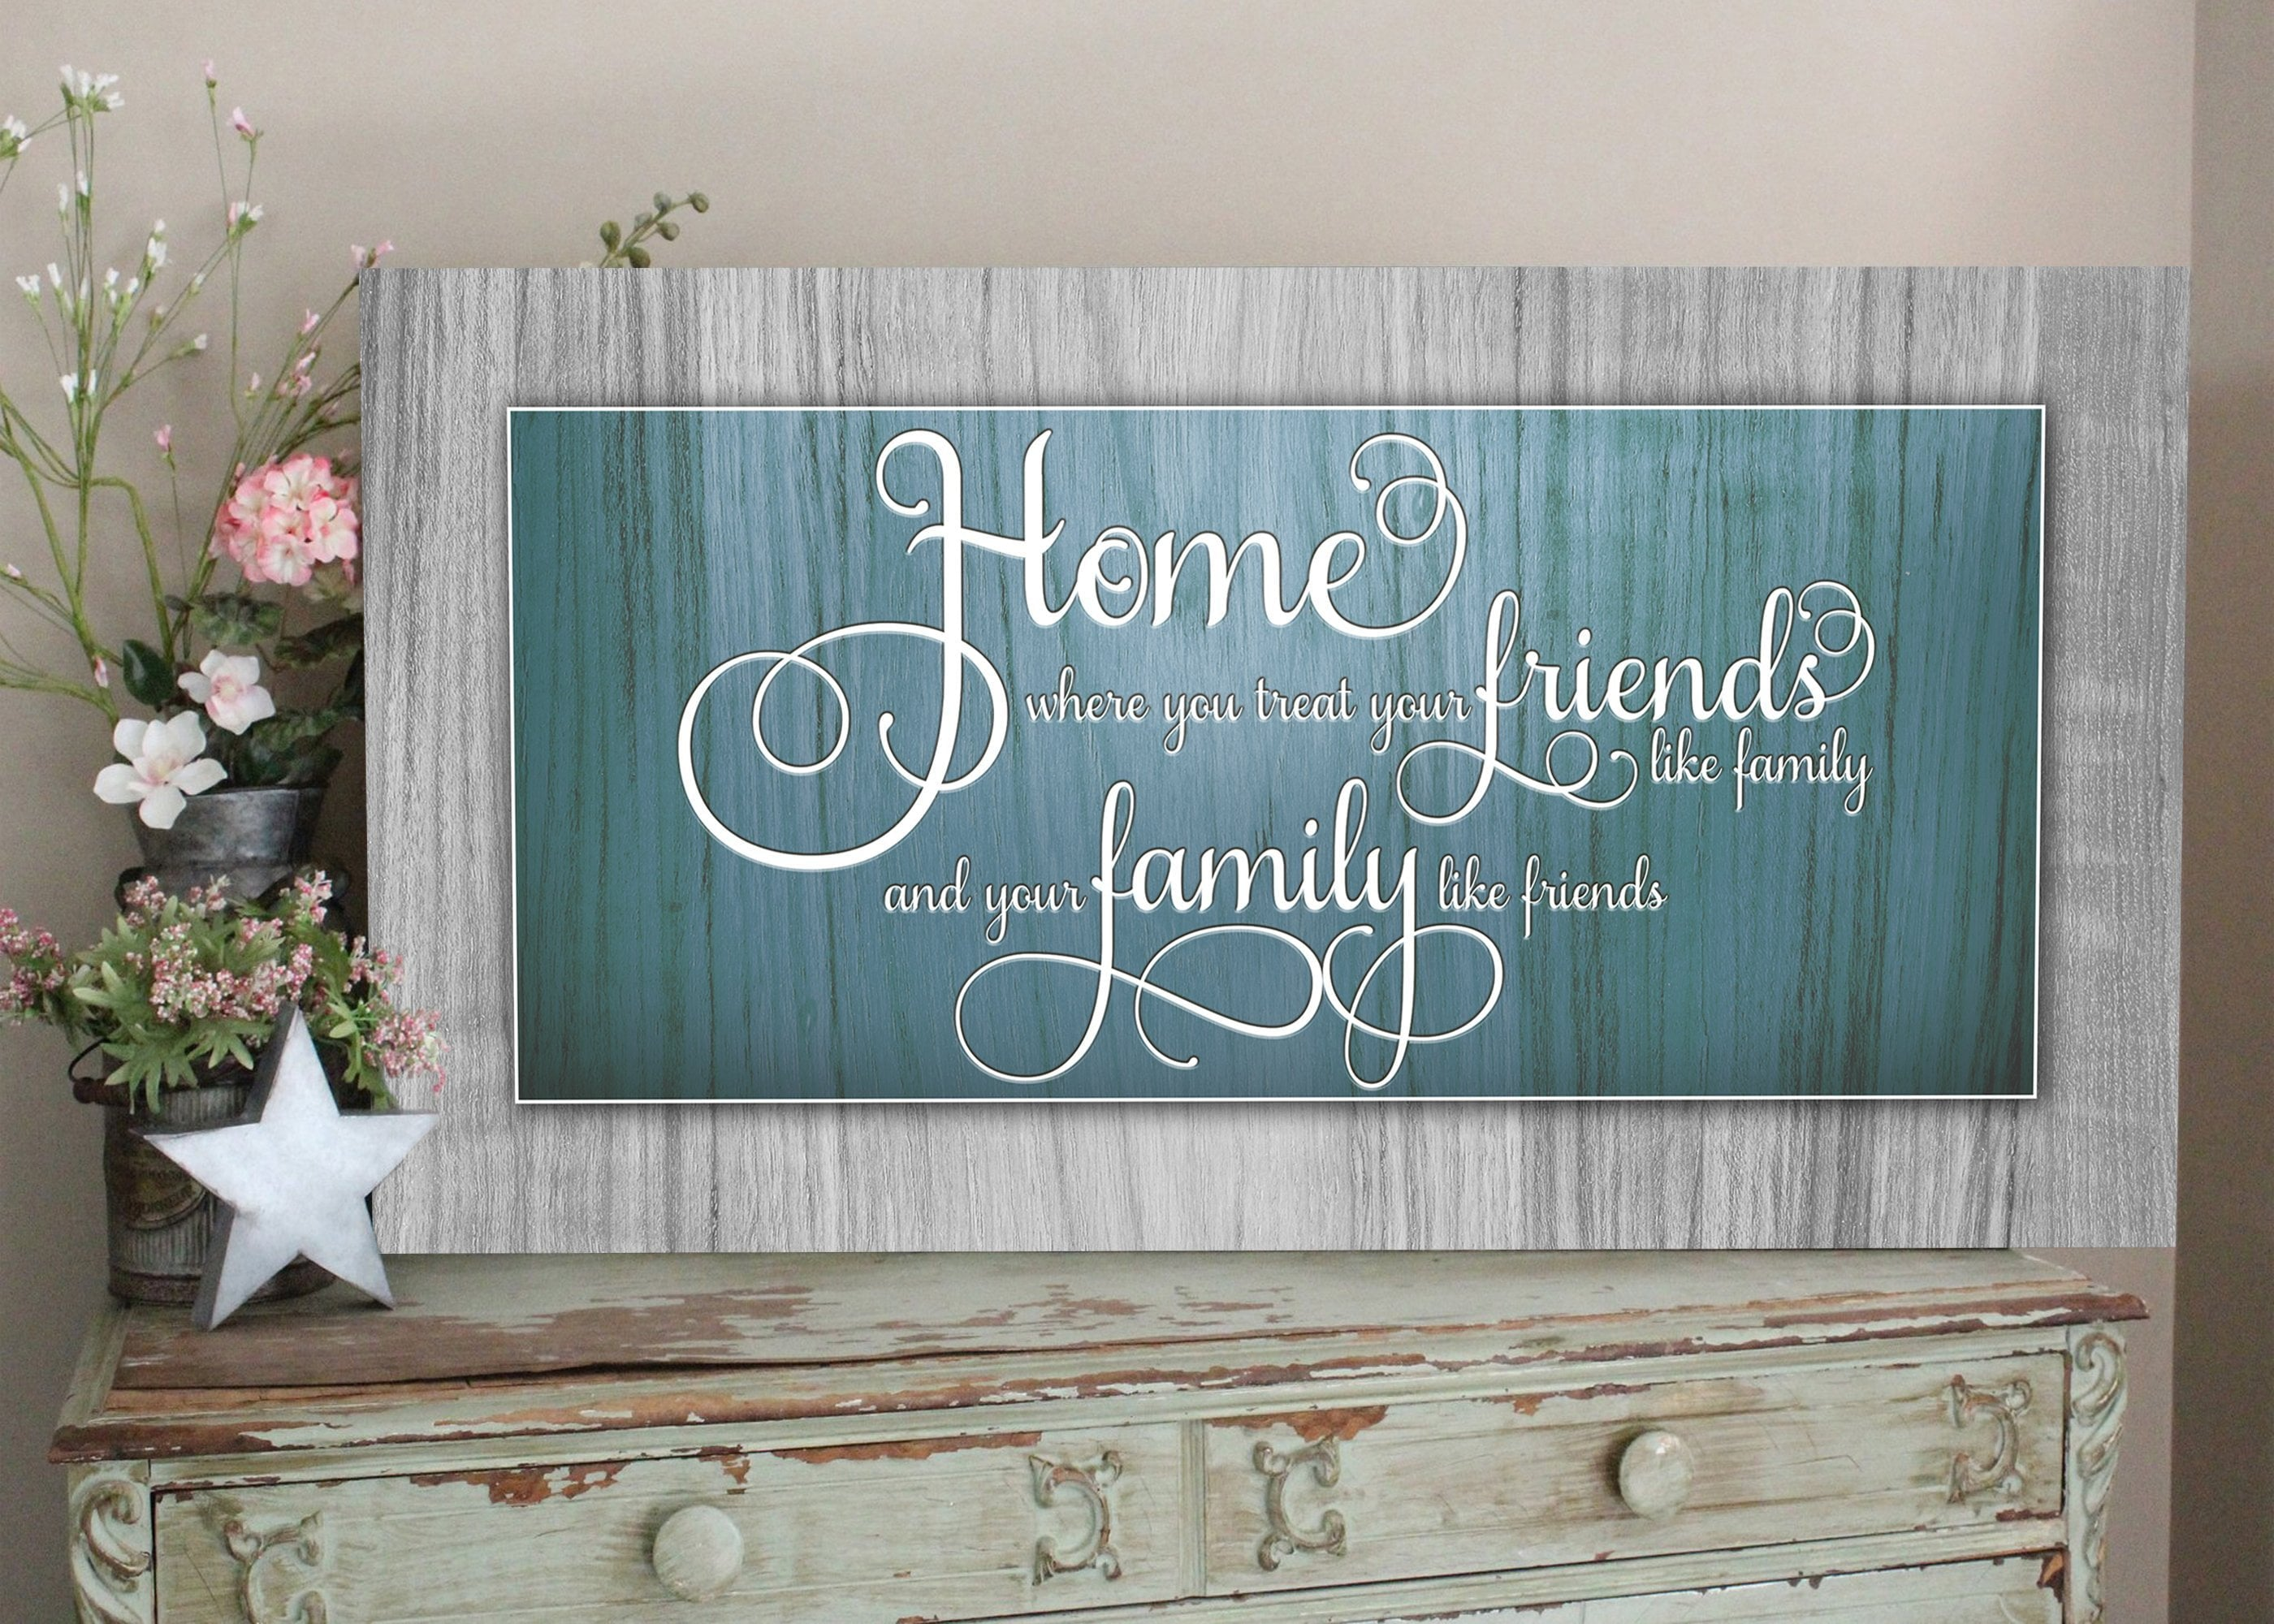 Home Where You Treat Your Friends Like Family - Teal